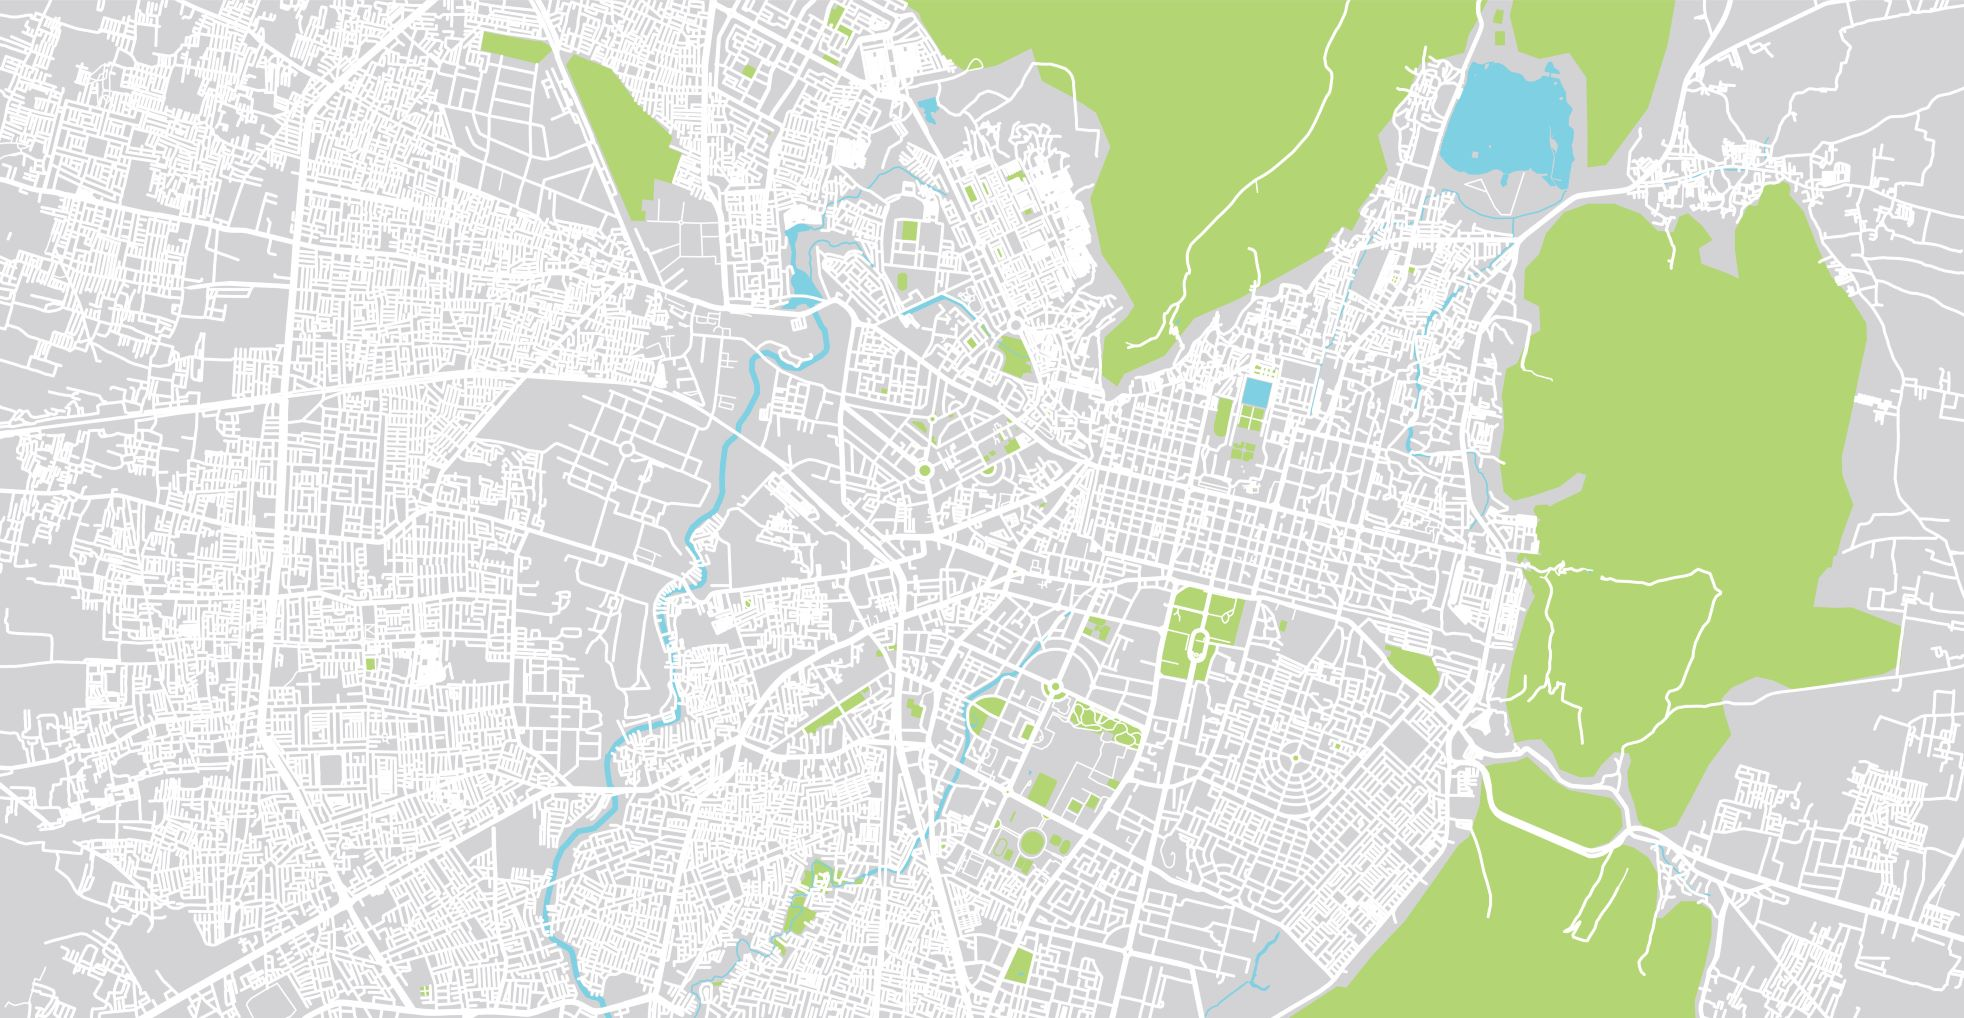 Urban vector city map of Jaipur, India